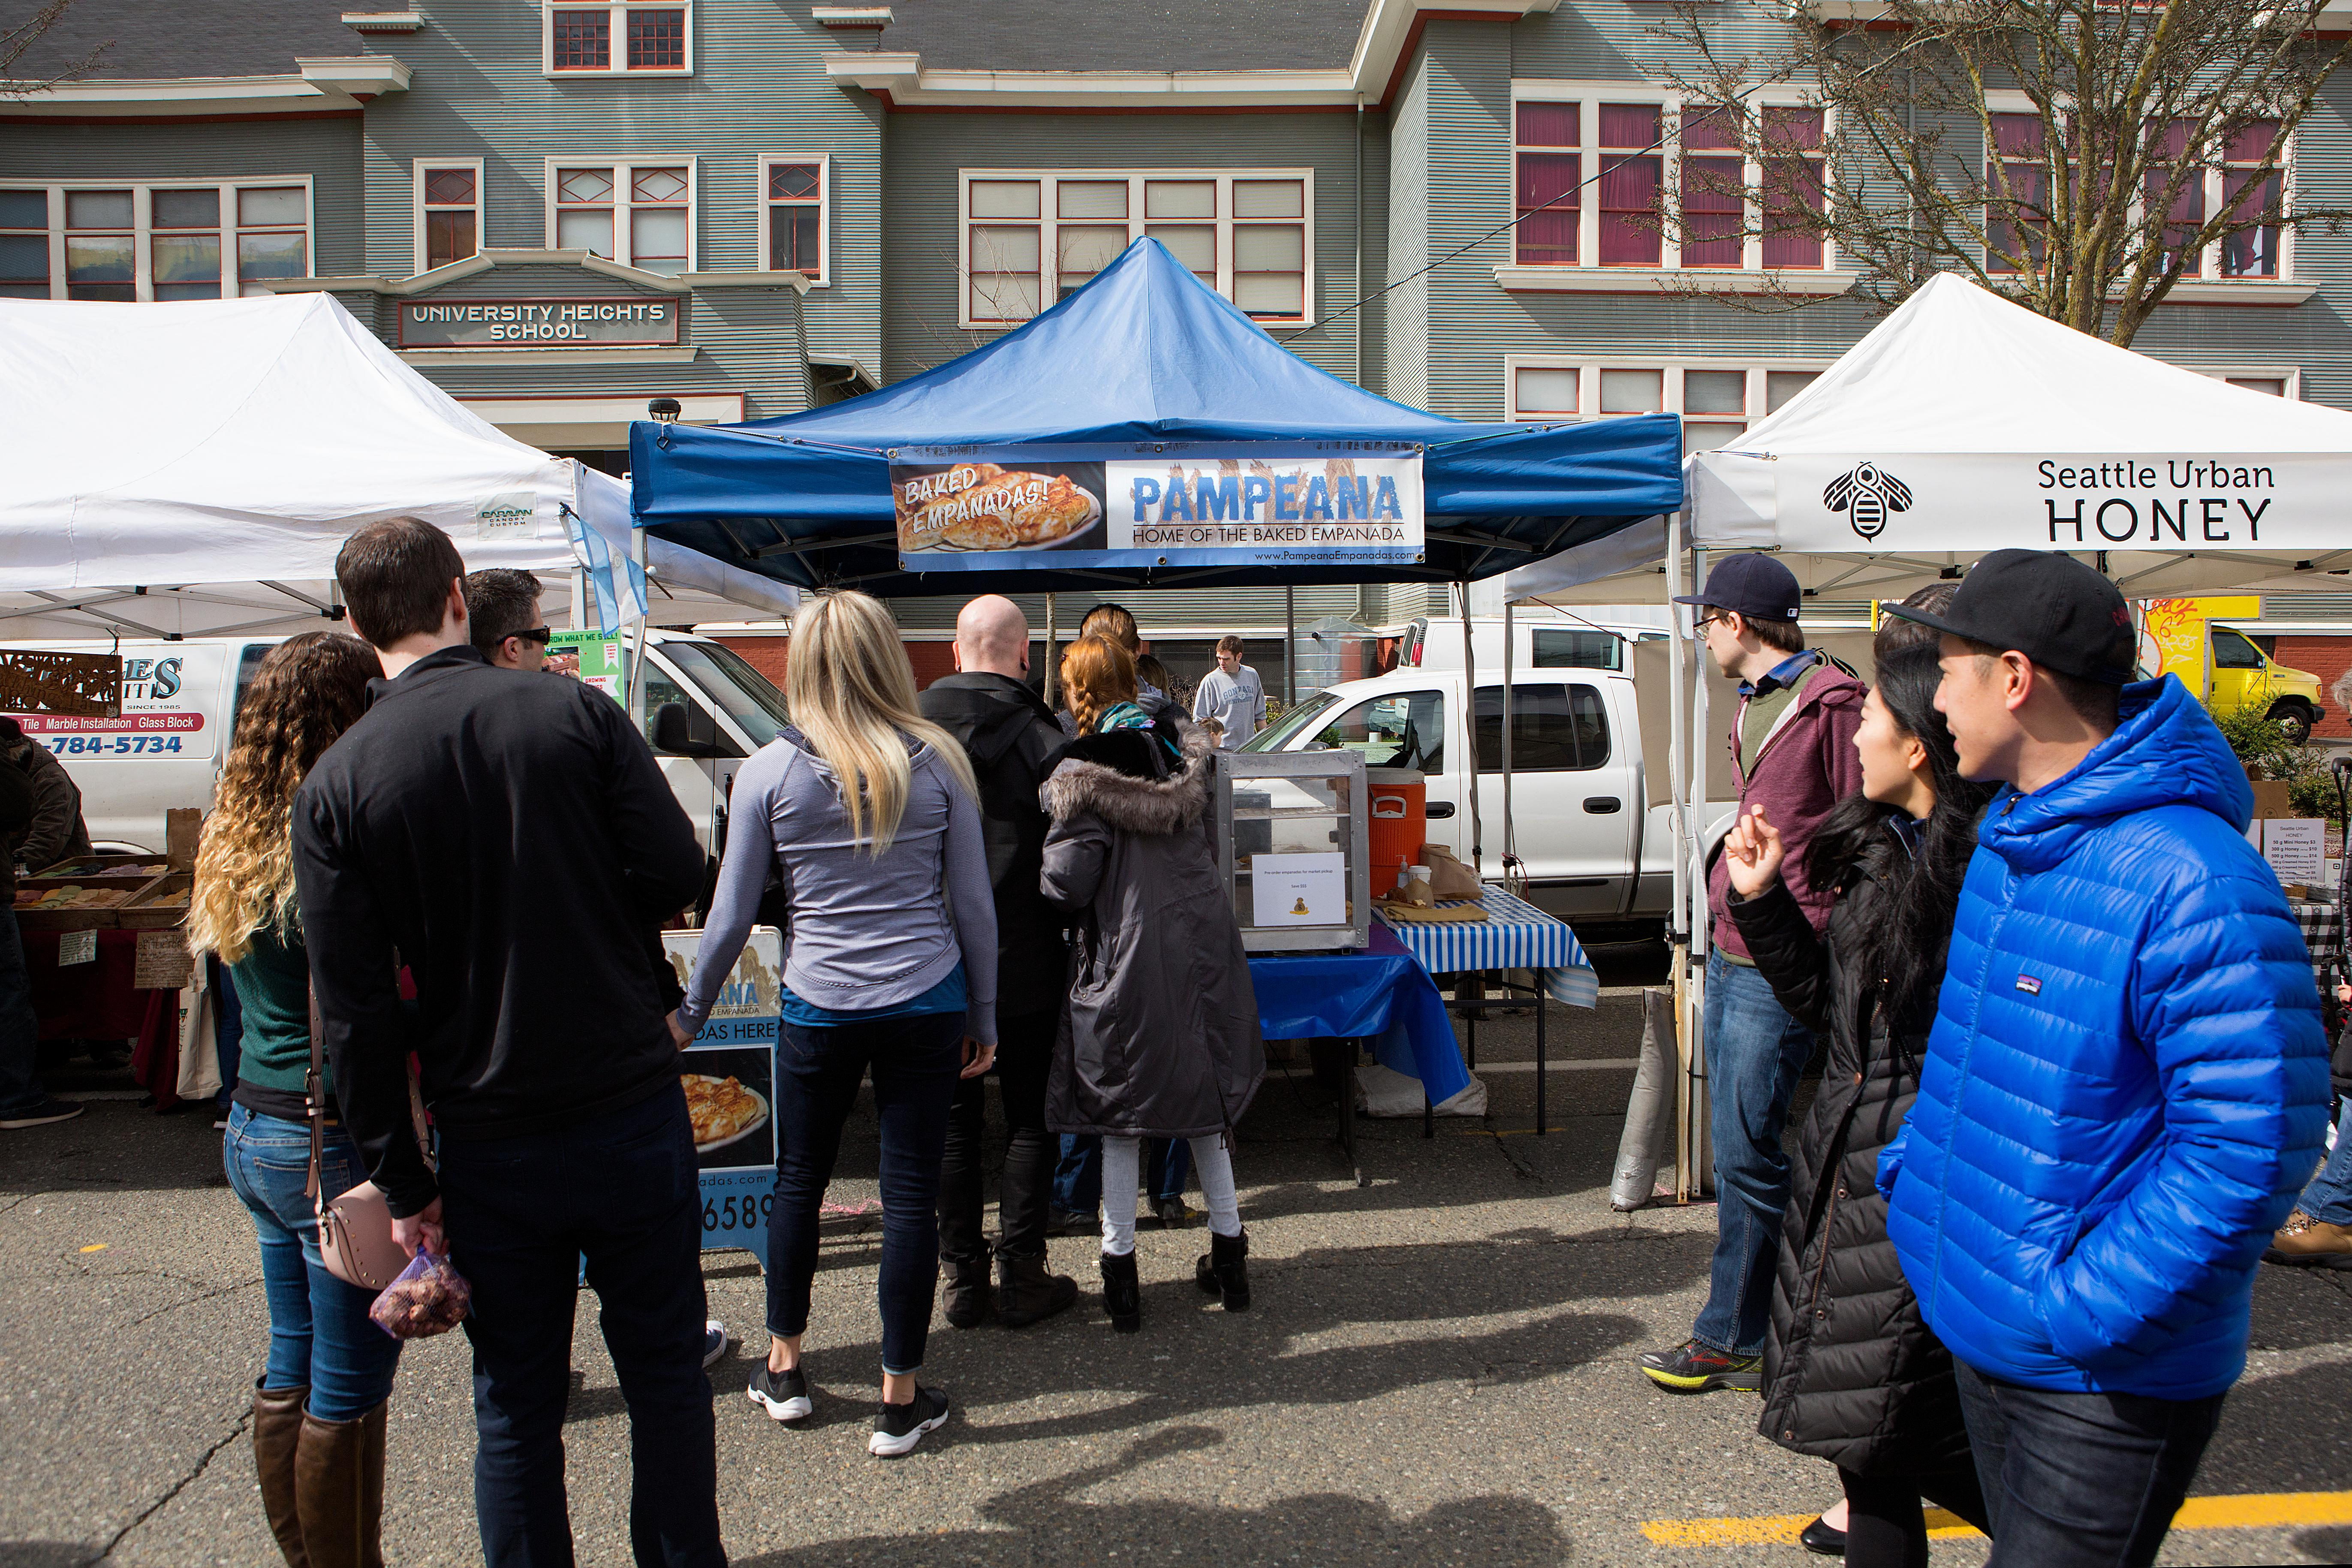 Pampeana Empanada co-owner Nancy Oltman serves up freshly baked empanadas at her booth at the U-District Farmers market. The empanadas come in various flavors, such as spinach and cheese, beef, chicken, and Beecher's mac and cheese. The Tacoma based business sells their baked goods at the U-District and Proctor farmers markets, the West Seattle Thriftway, and at various Metropolitan Market locations. (Sy Bean / Seattle Refined)